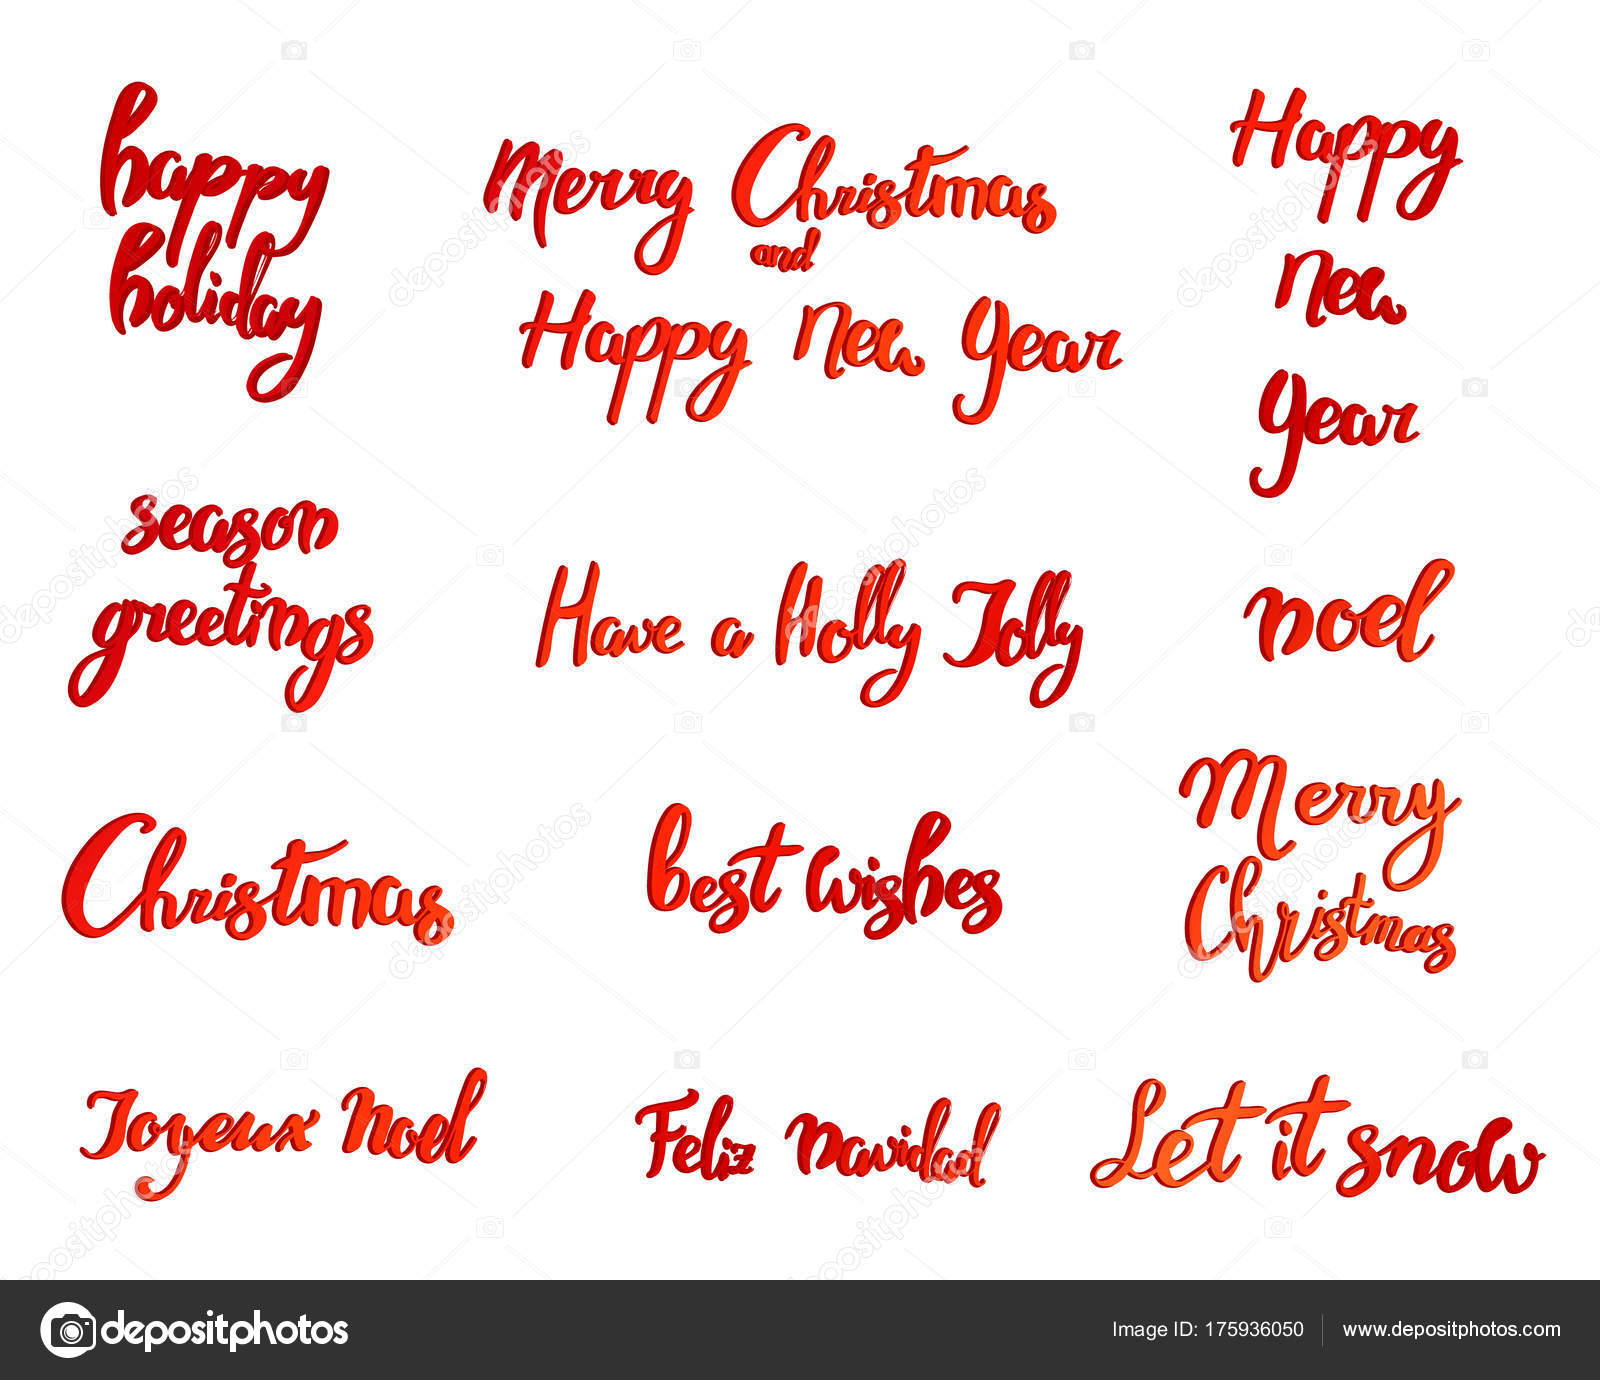 Merry Christmas Happy New Year 2018 Greeting Card Typography Xmas